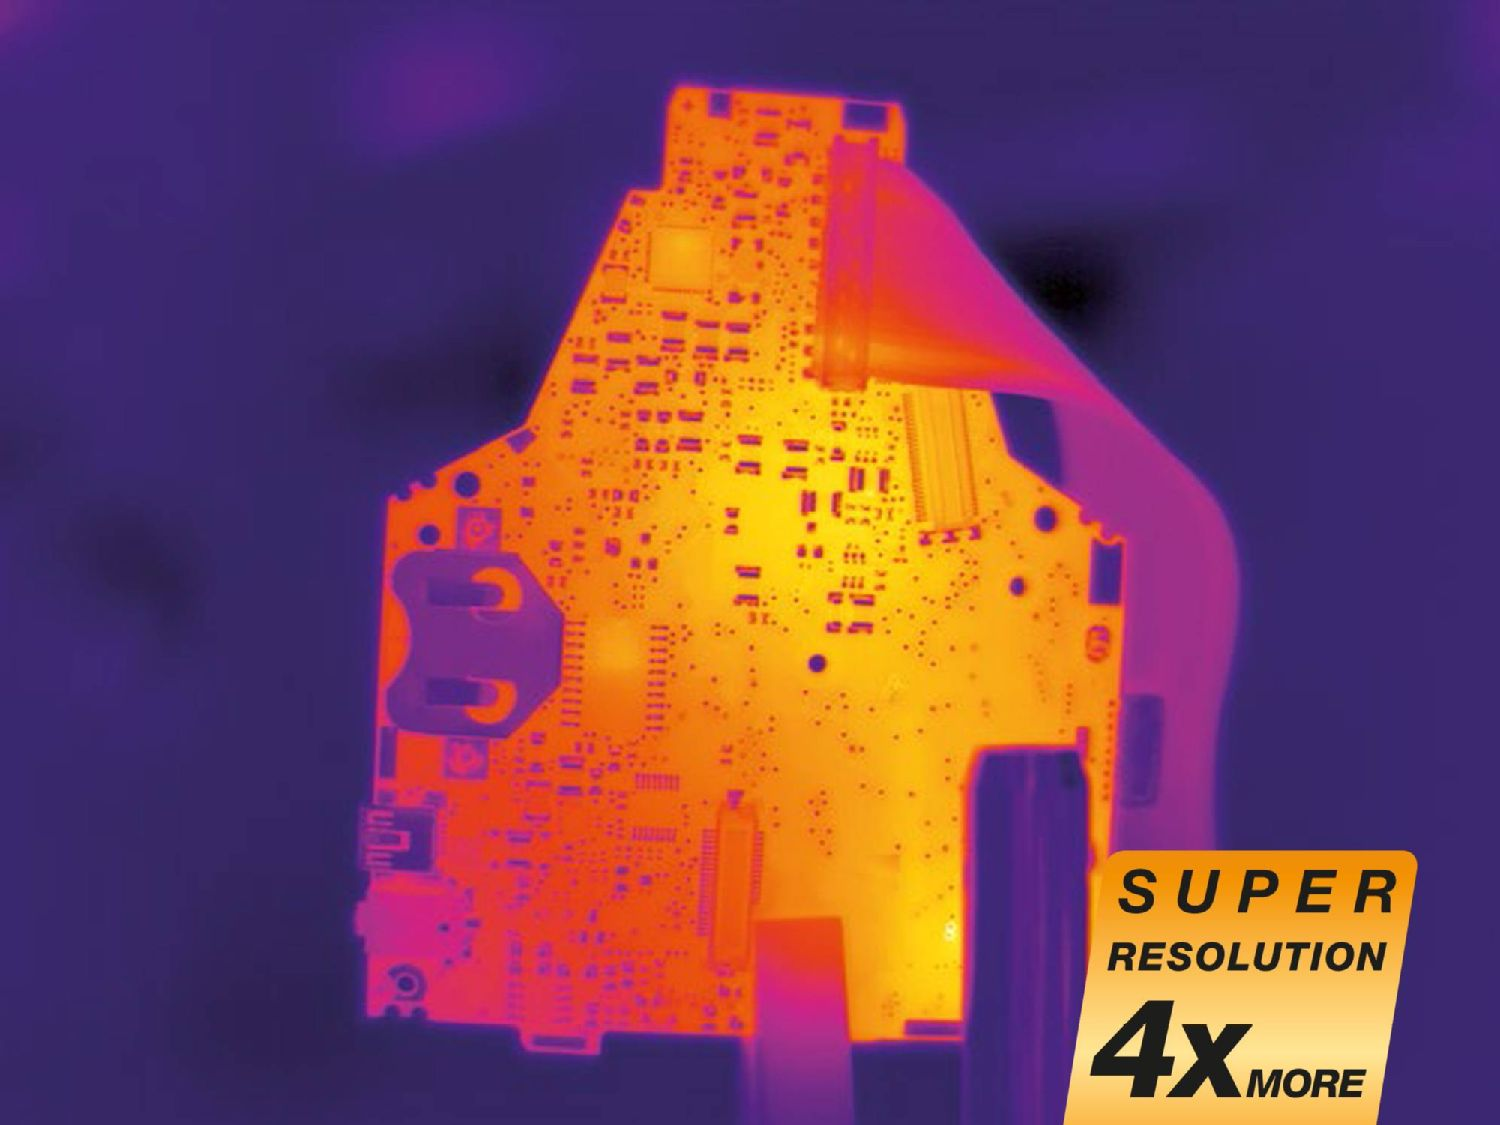 thermography-research-v2-2000x1500.jpg